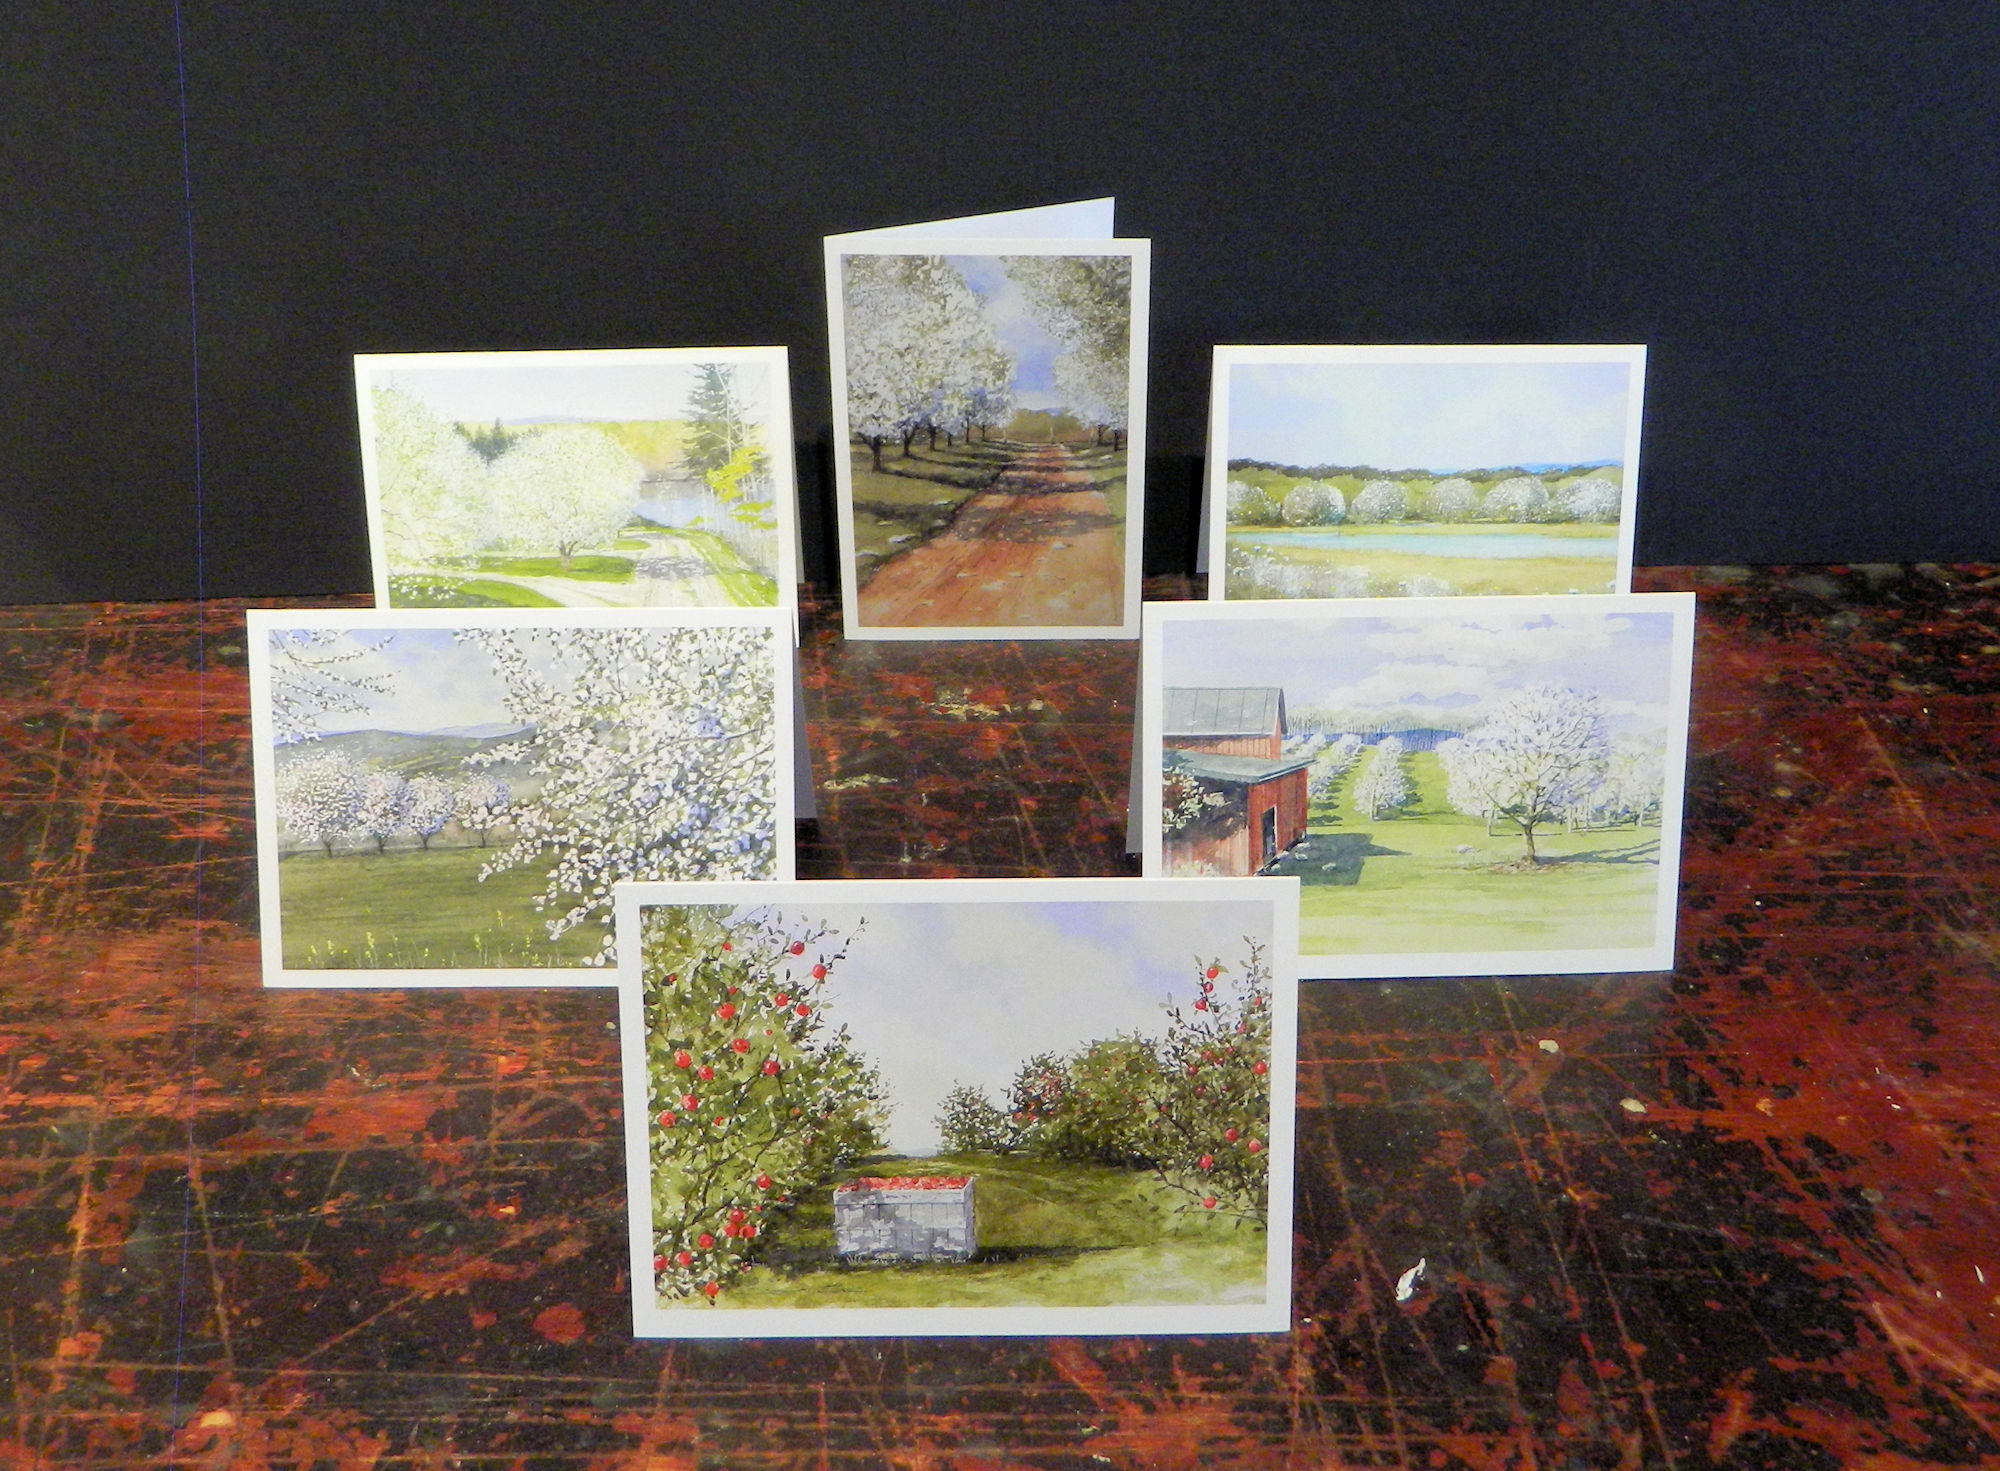 Notecards in the pack: Valley Harvest | Spring in the Valley | Barley's Orchard | Brannon Orchard | The Last Orchard | Wildflowers & Orchard | 6-pack w/envelopes $18